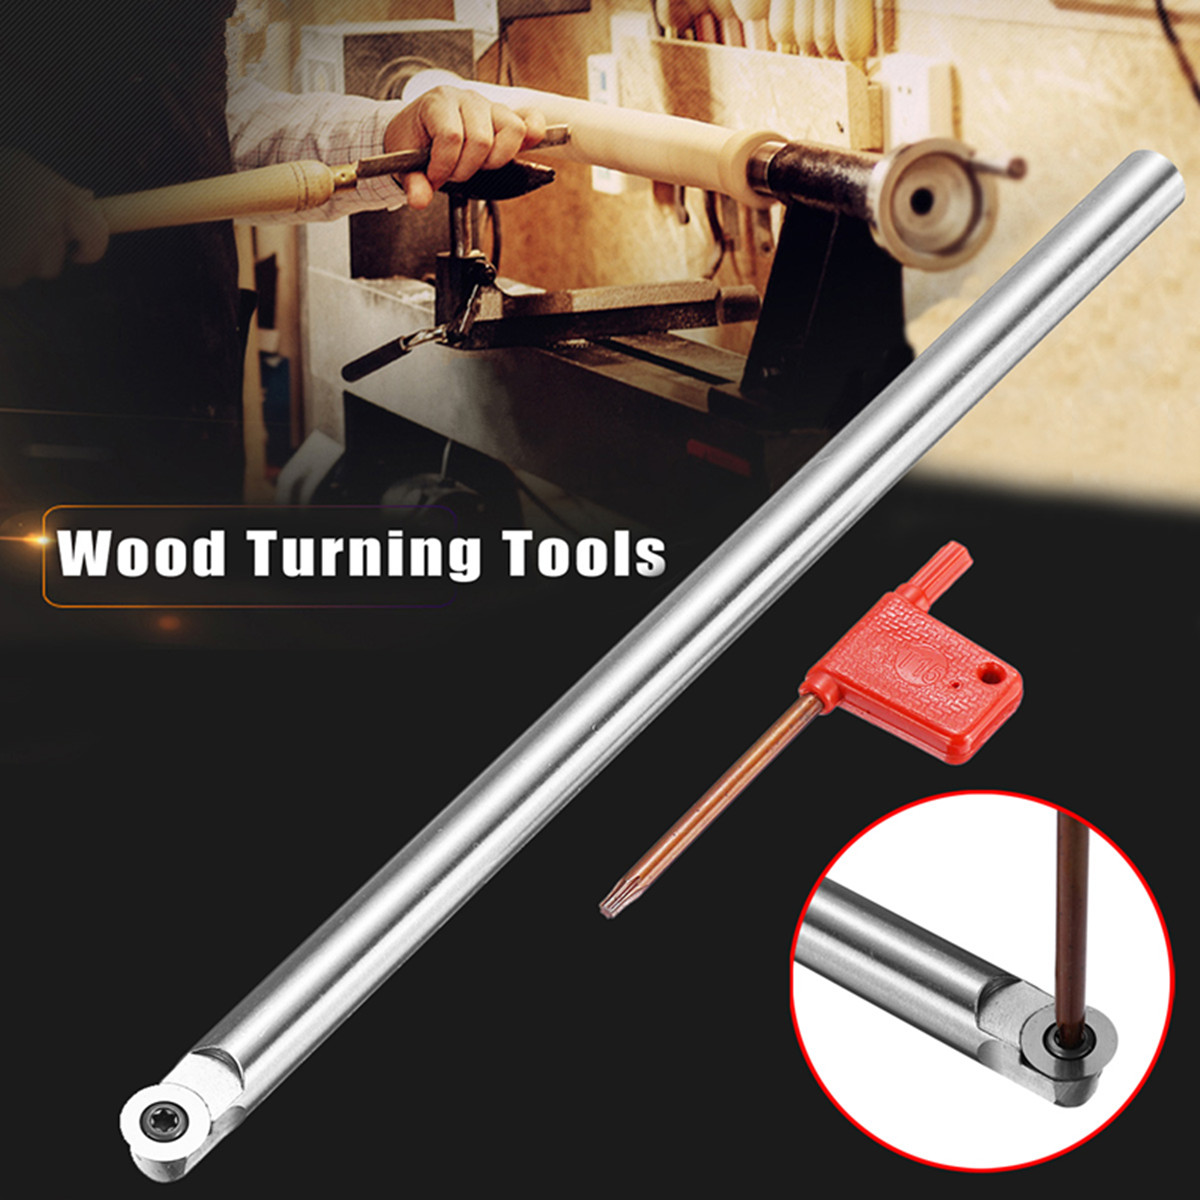 25cm R6 Round Wooden Turning Tool Chisel Alloy Carbide Tip Bit Lathe Tool Set with 1Pcs T15 Wrench 5pcs set new 3 8 tip carbide indexable turning tool set mayitr good hardness precision insert lathe tool bit